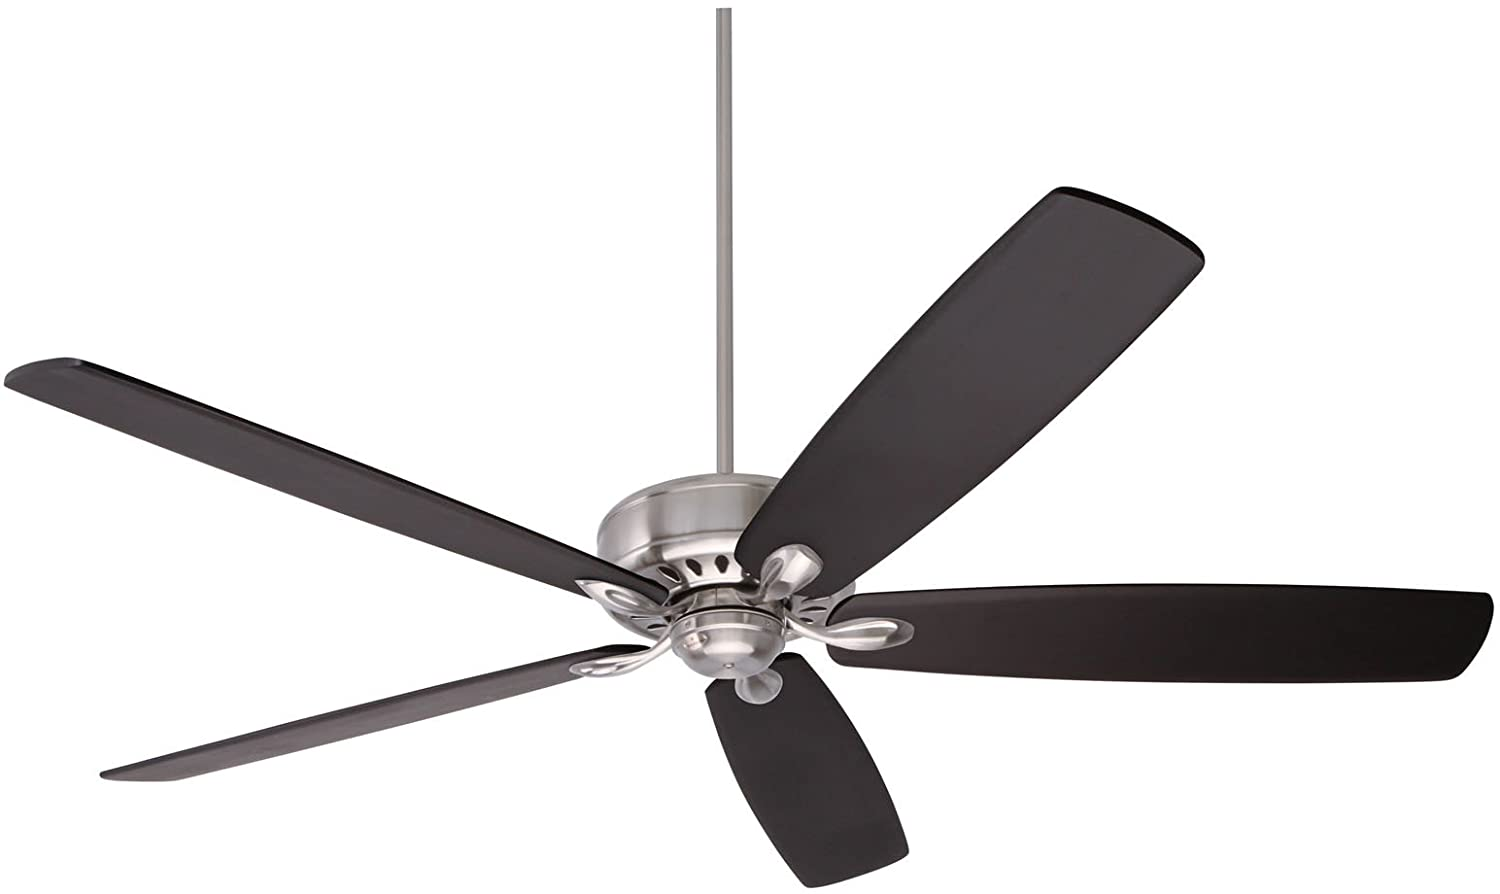 Emerson ceiling fans cf921bs avant eco energy star ceiling fan with emerson ceiling fans cf921bs avant eco energy star ceiling fan with remote blades sold separately brushed steel finish amazon aloadofball Image collections